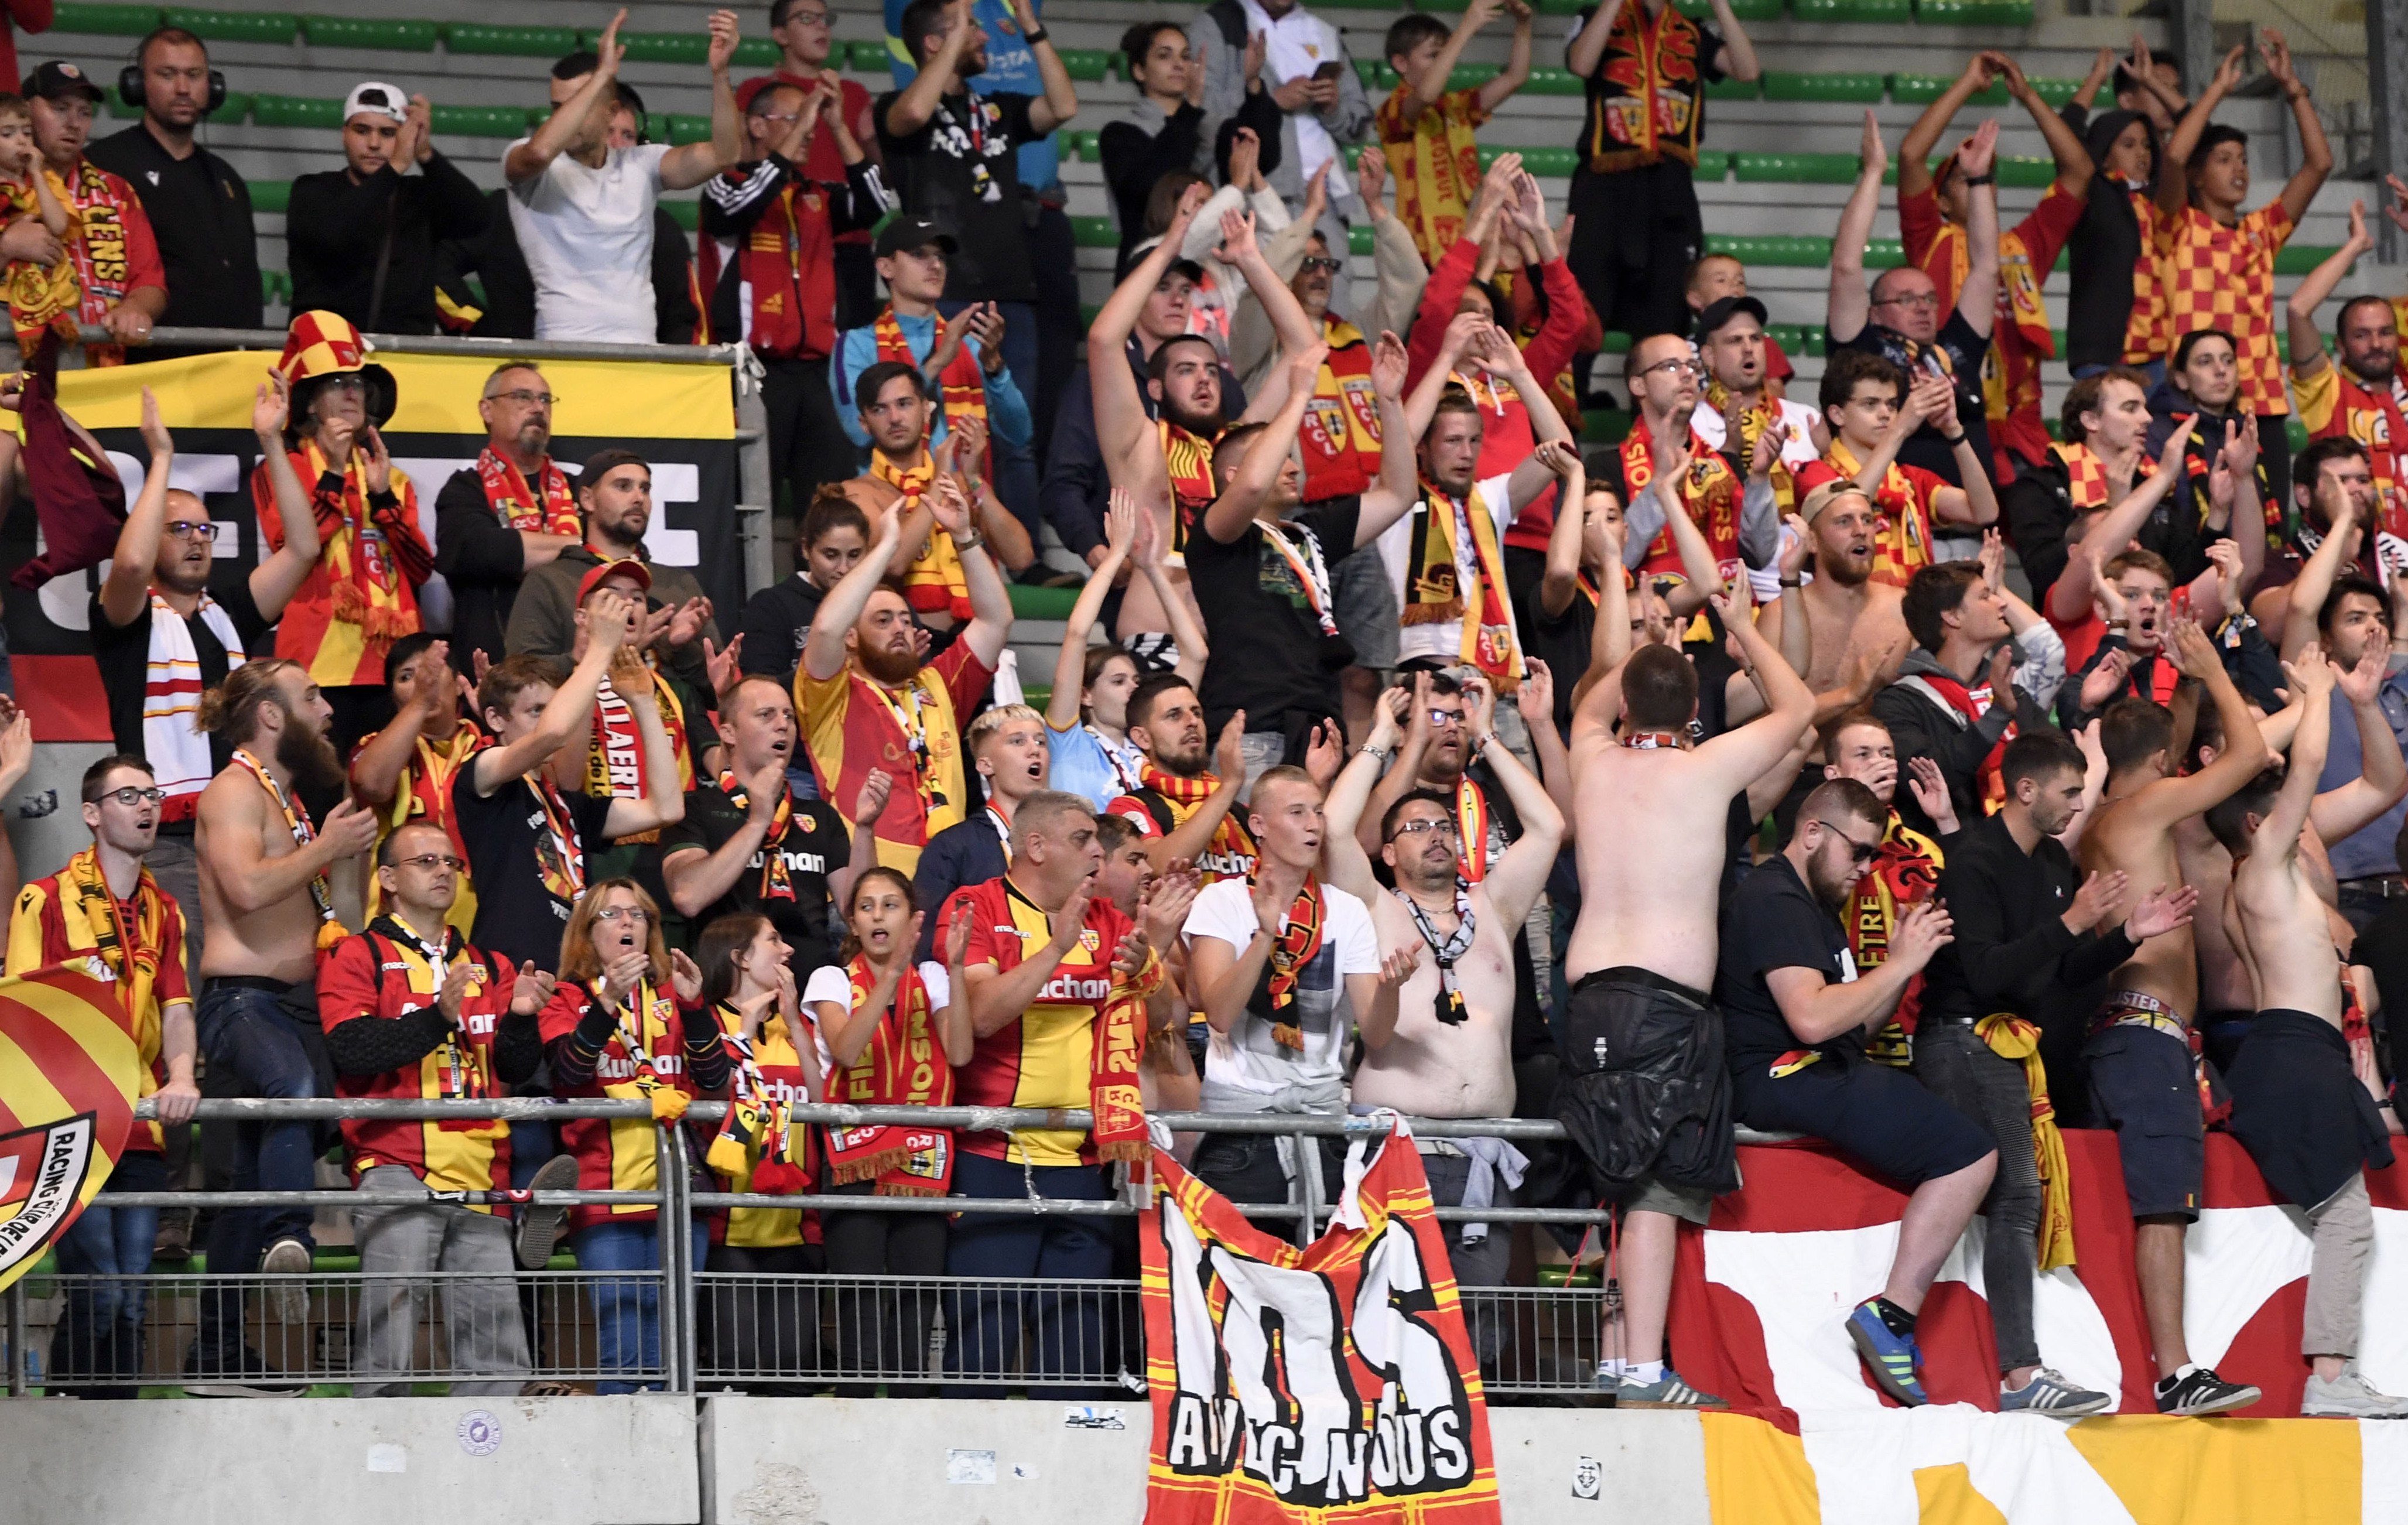 Football - Ligue 2 - Ligue 2 : Lens-Le Havre en direct